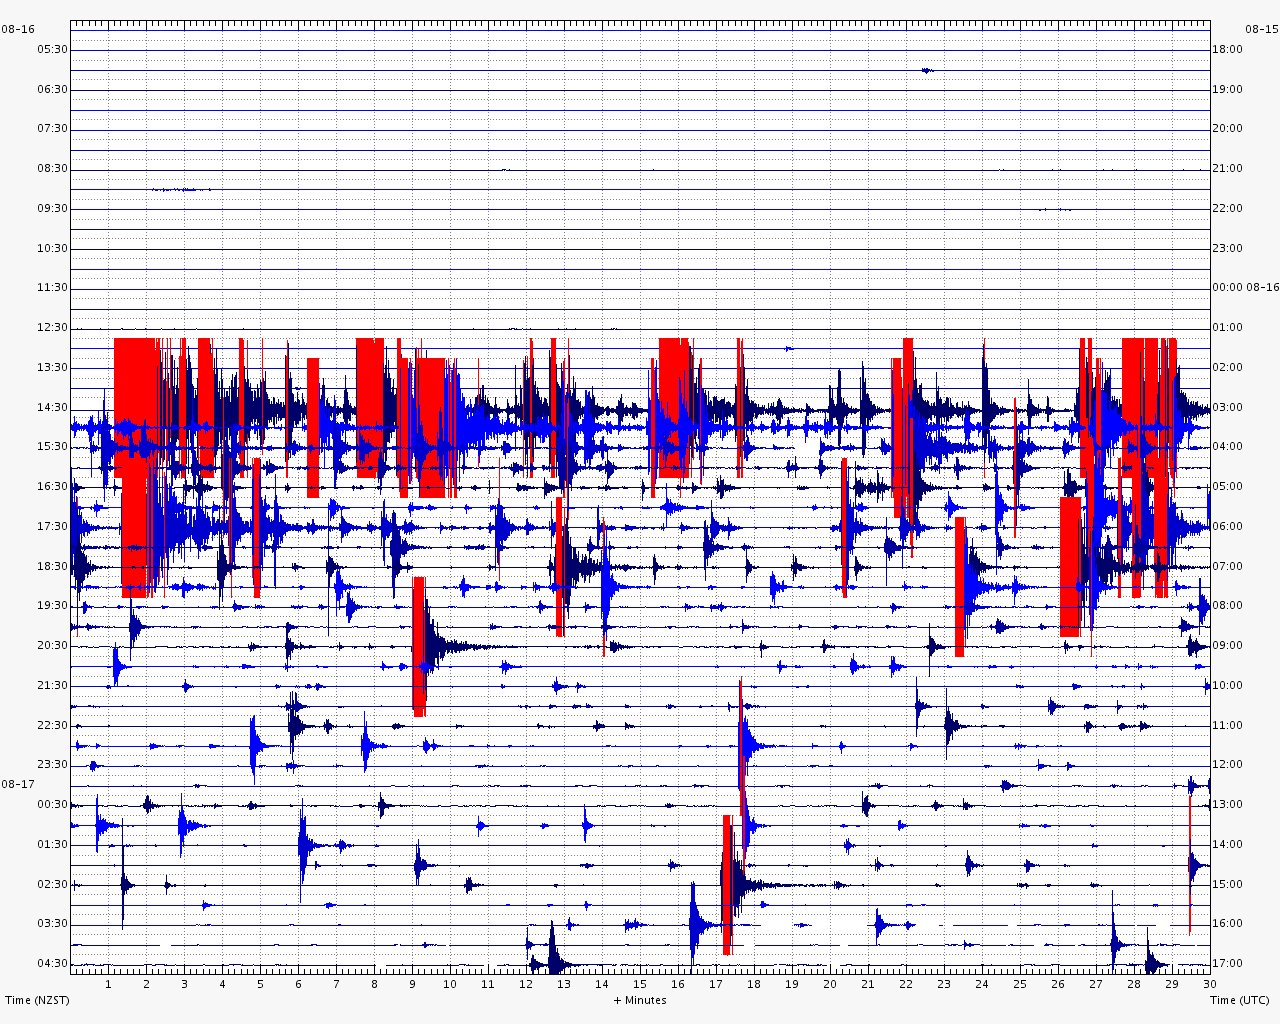 24 hours of seismic activity recording at Cape Campbell (CMWZ) from 5am Friday 16th August to 5am Saturday 17th August, showing the Lake Grassmere M6.6 earthquake and aftershocks.